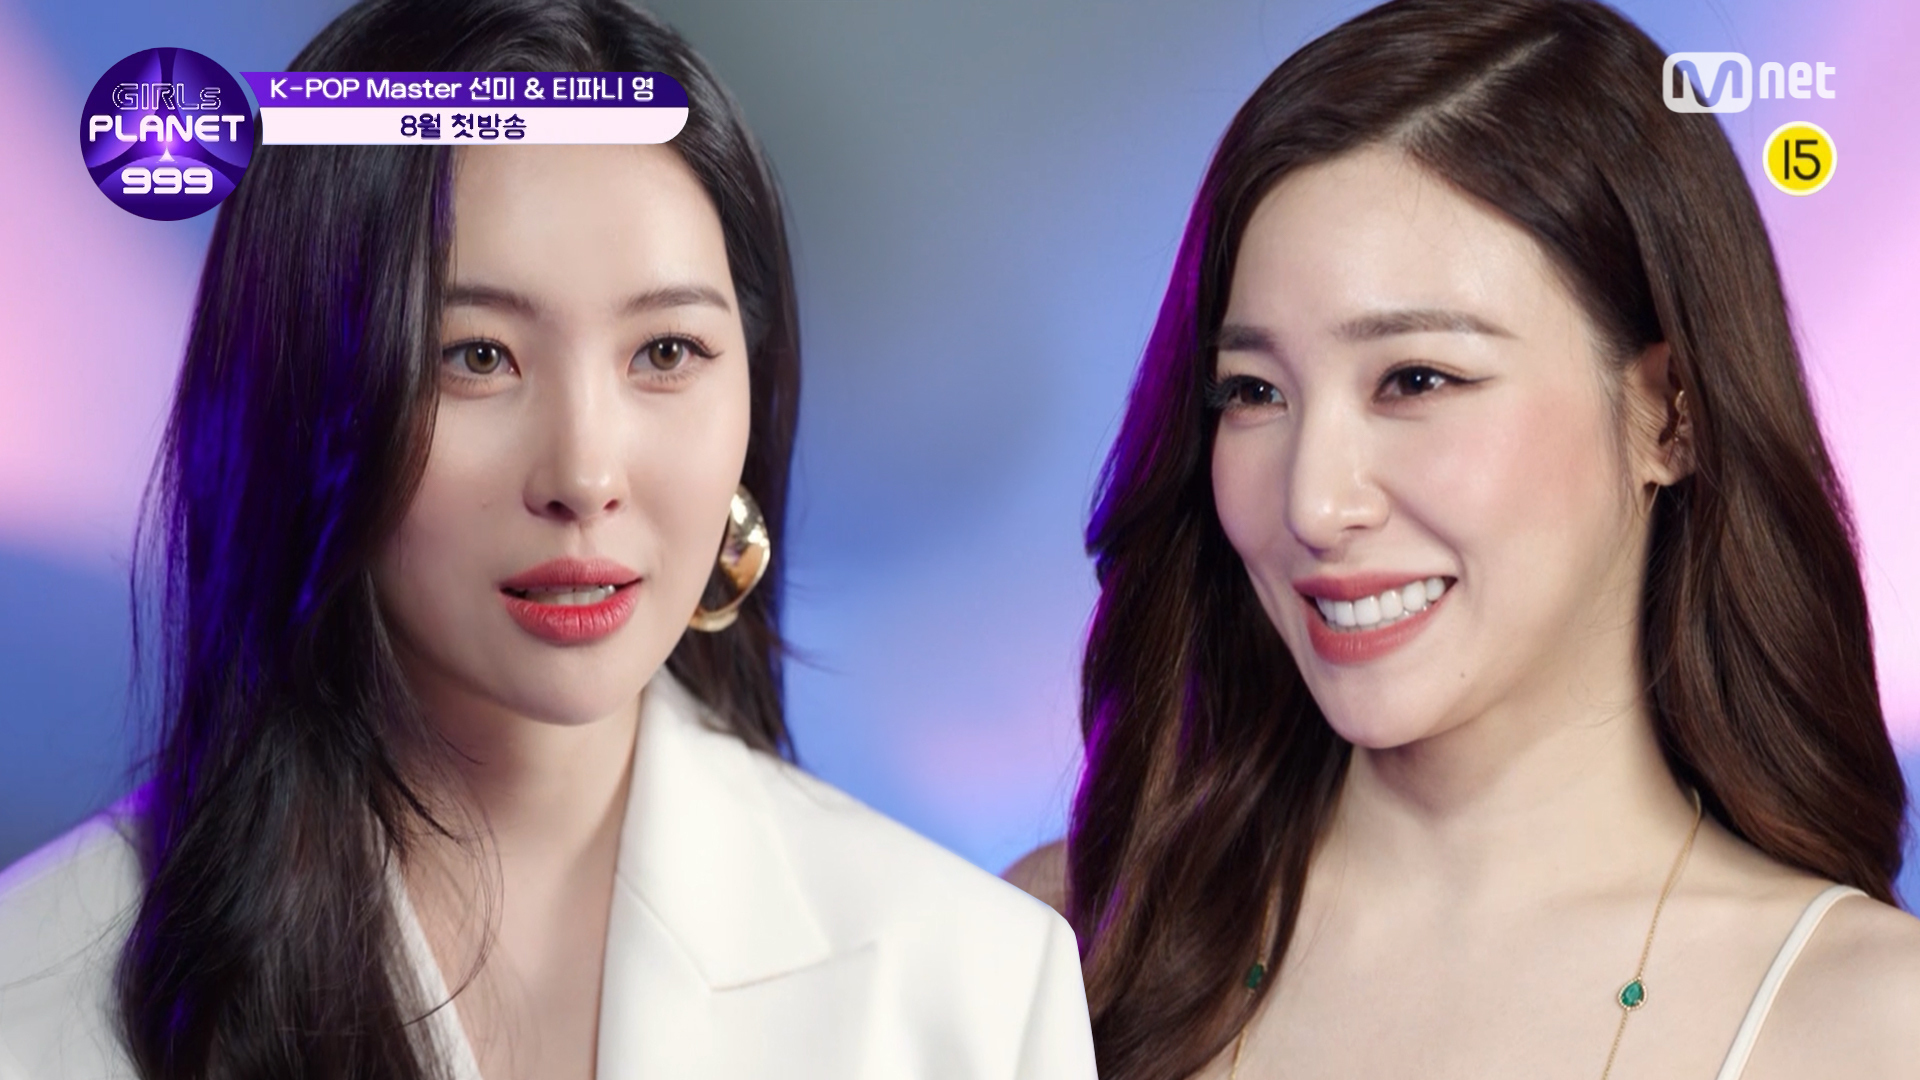 Tiffany – Mnet Girls Planet 999 Pictures